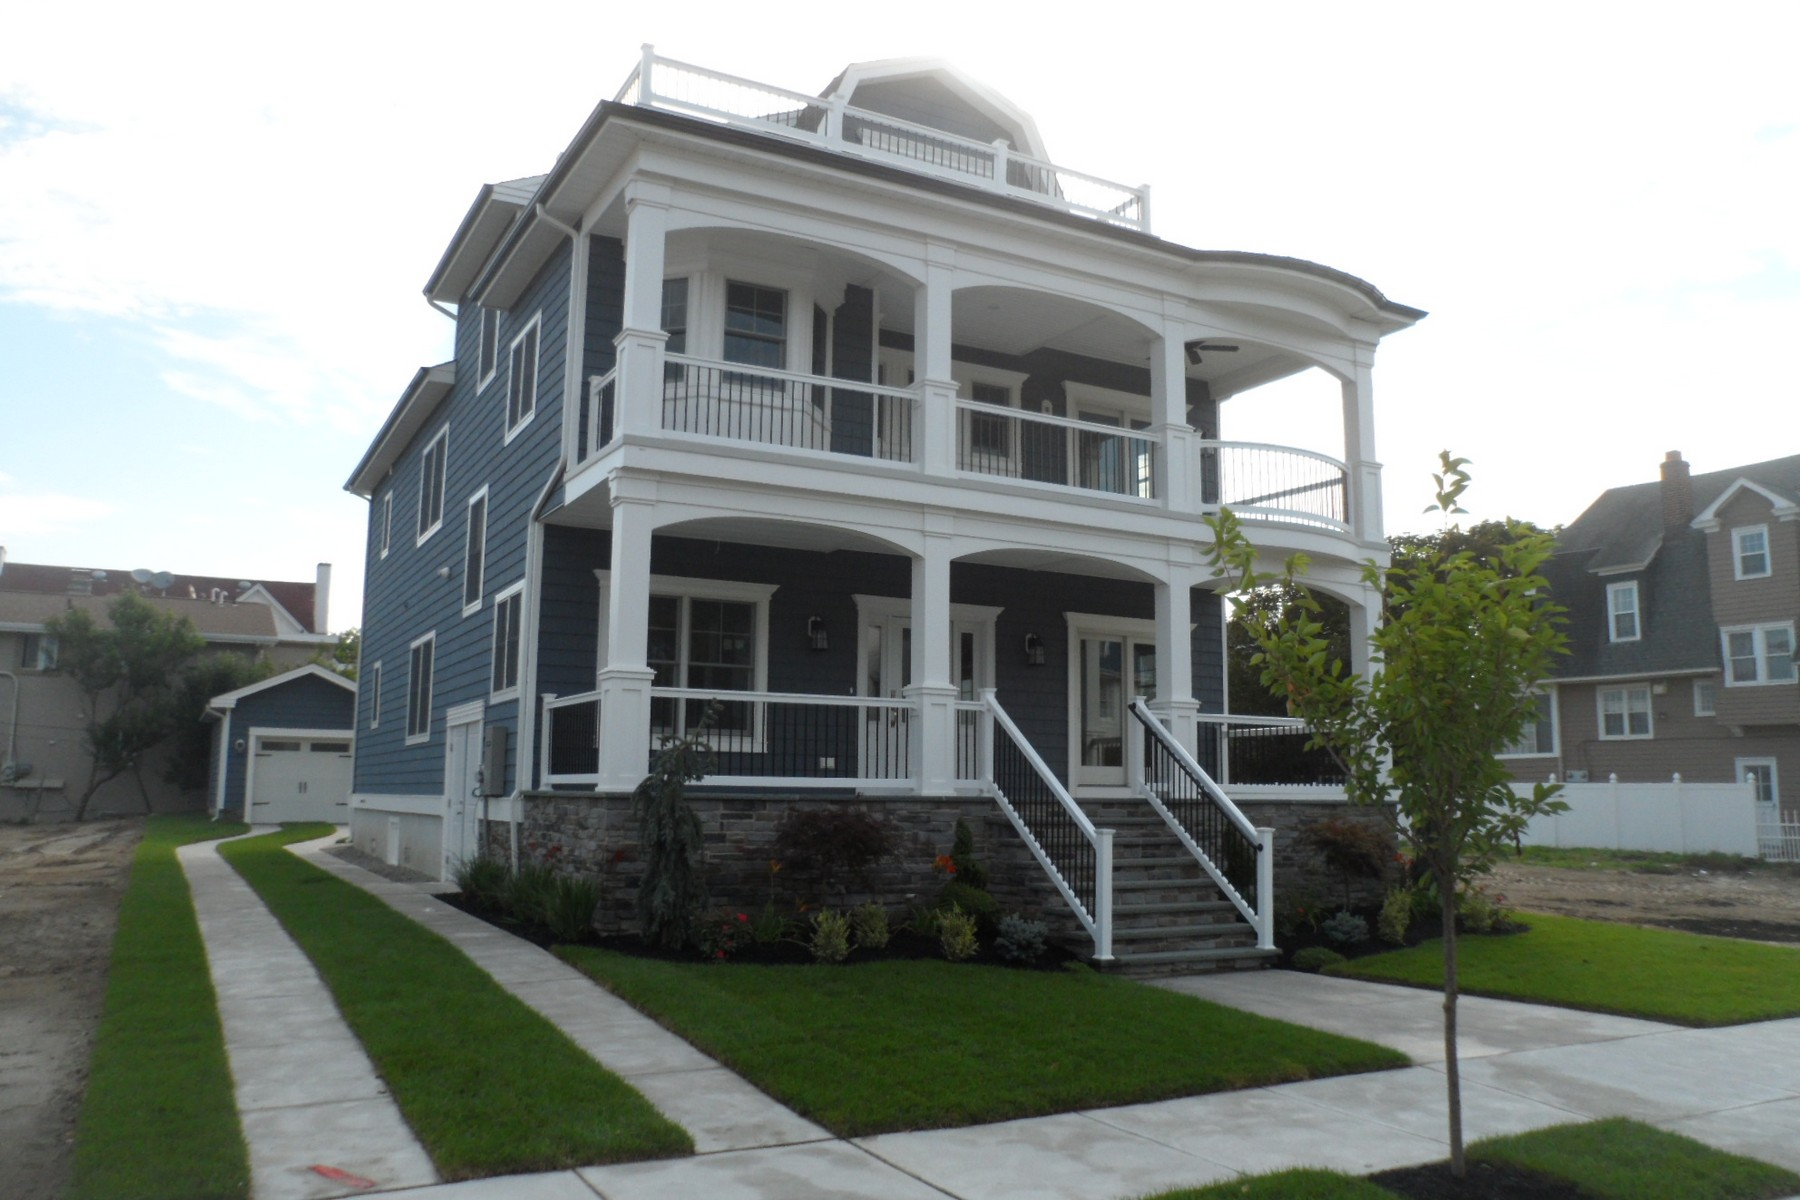 Single Family Home for Sale at 3 S Dudley Avenue Ventnor, New Jersey, 08406 United States